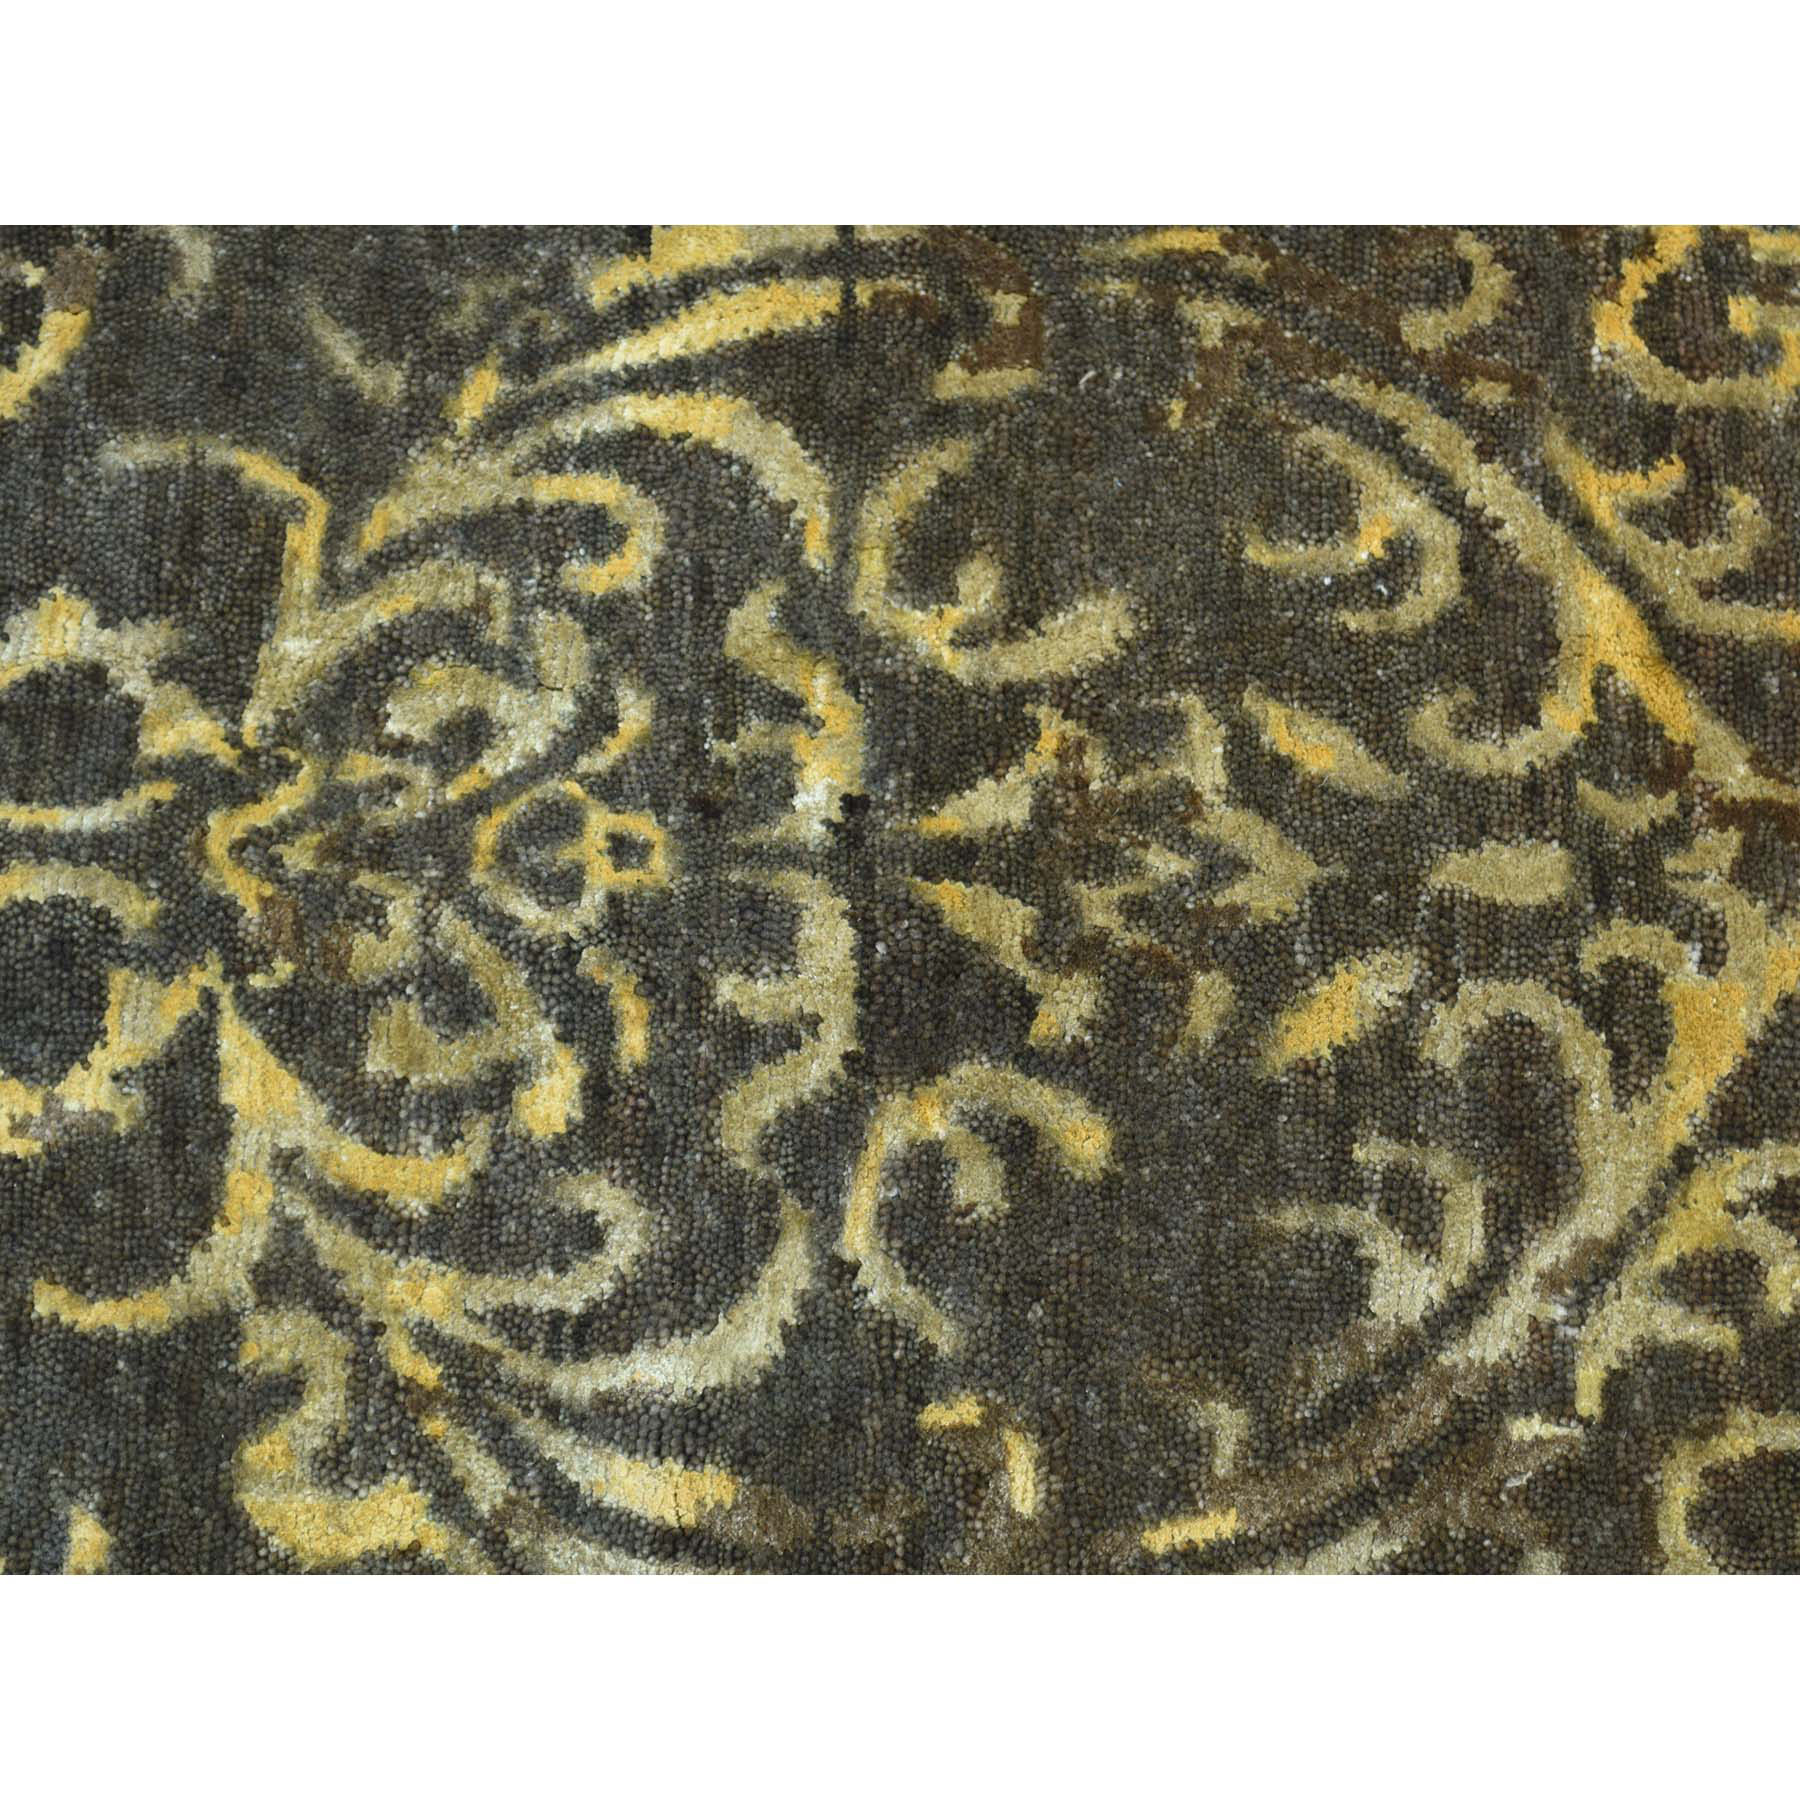 "2'x9'10"" Hand-Knotted Tone on Tone Damask Wool and Silk Oriental Rug"